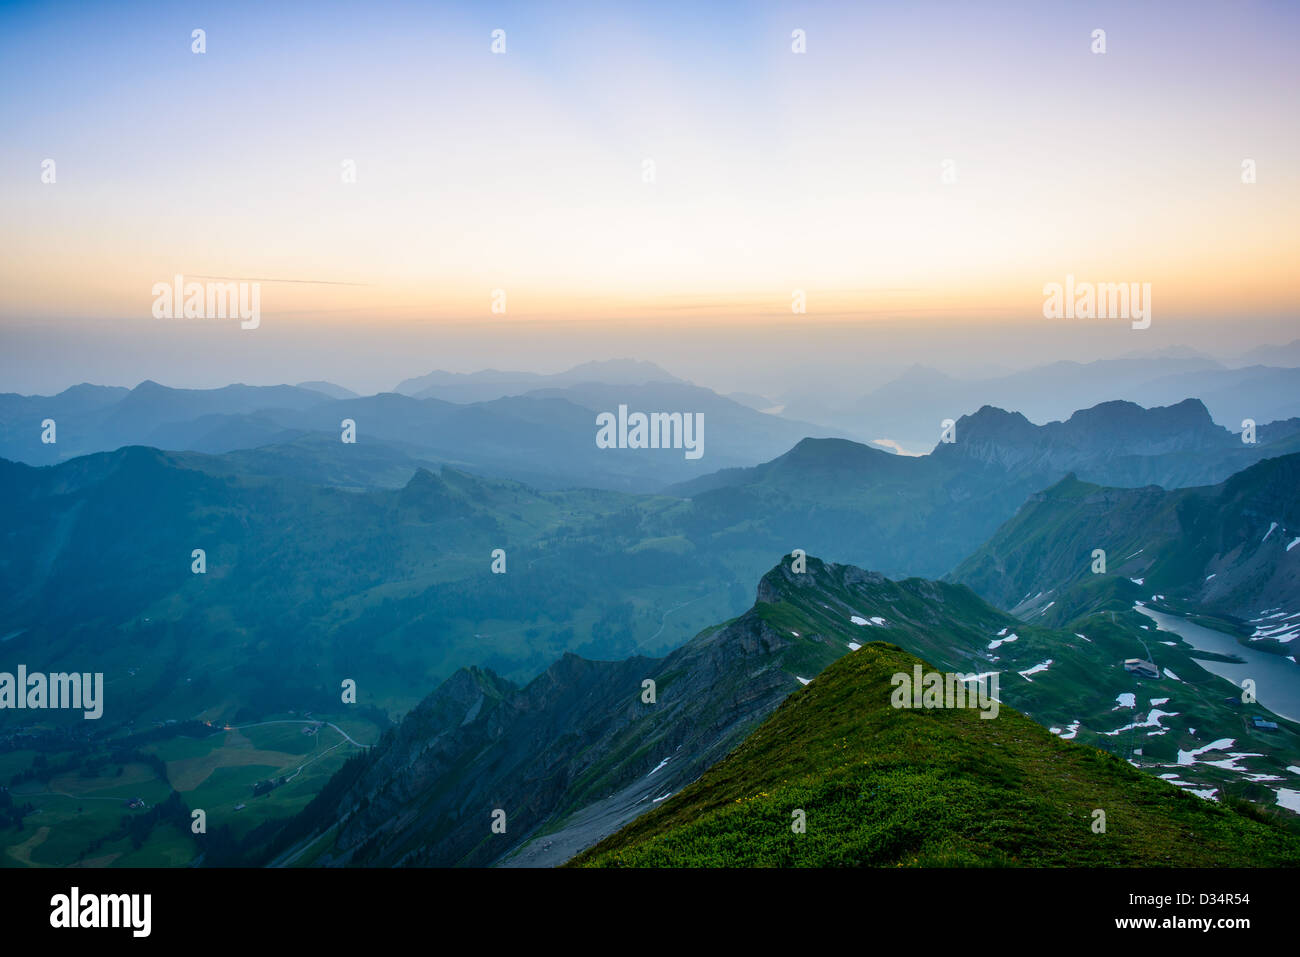 Sunrise mountain panorama from Brienzer Rothorn with purple sky, Switzerland. Stock Photo